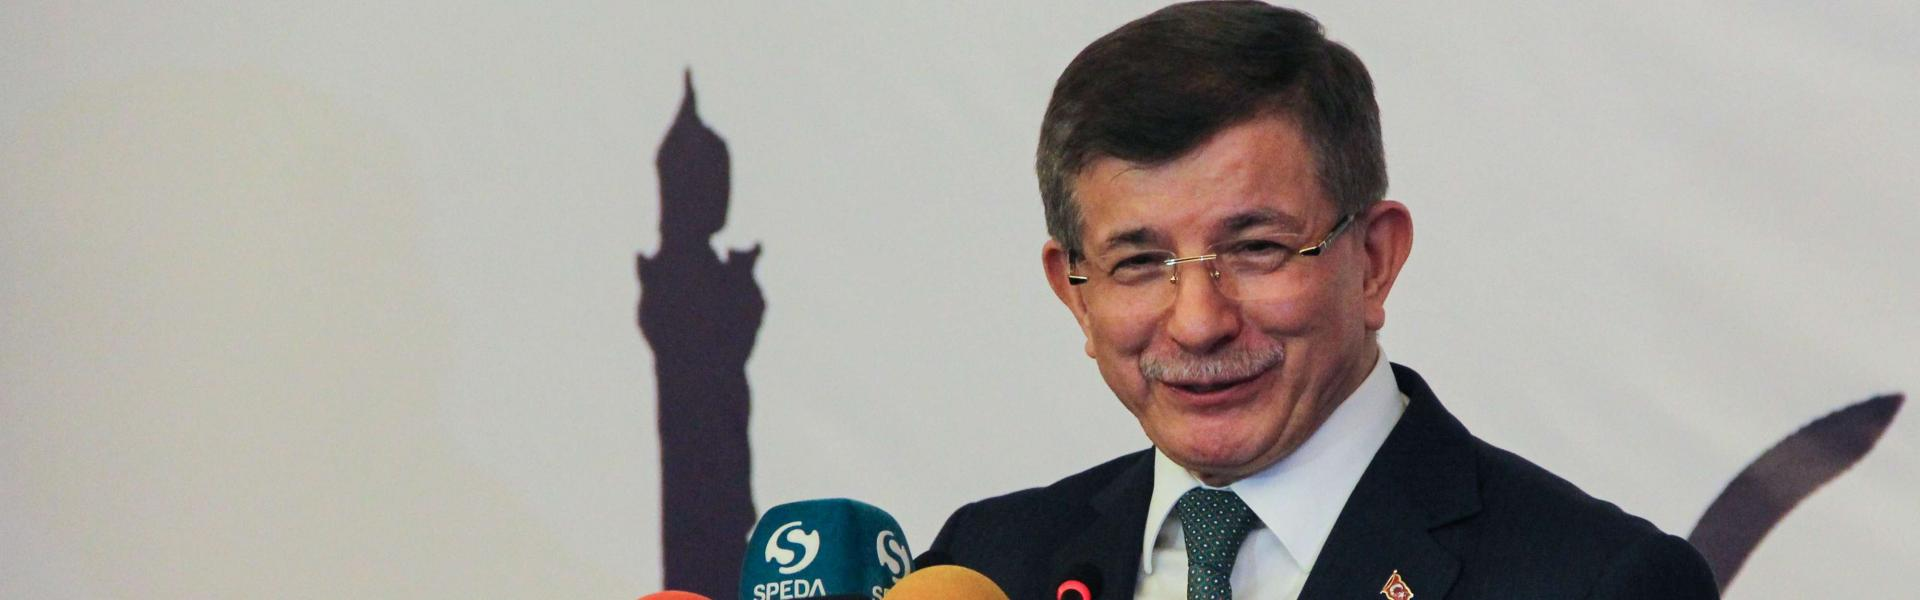 Former prime minister Ahmet Davutoglu speaks during the holy month of Ramadan in Diyarbakir on May 27, 2019. (Photo by Ilyas AKENGIN / AFP)